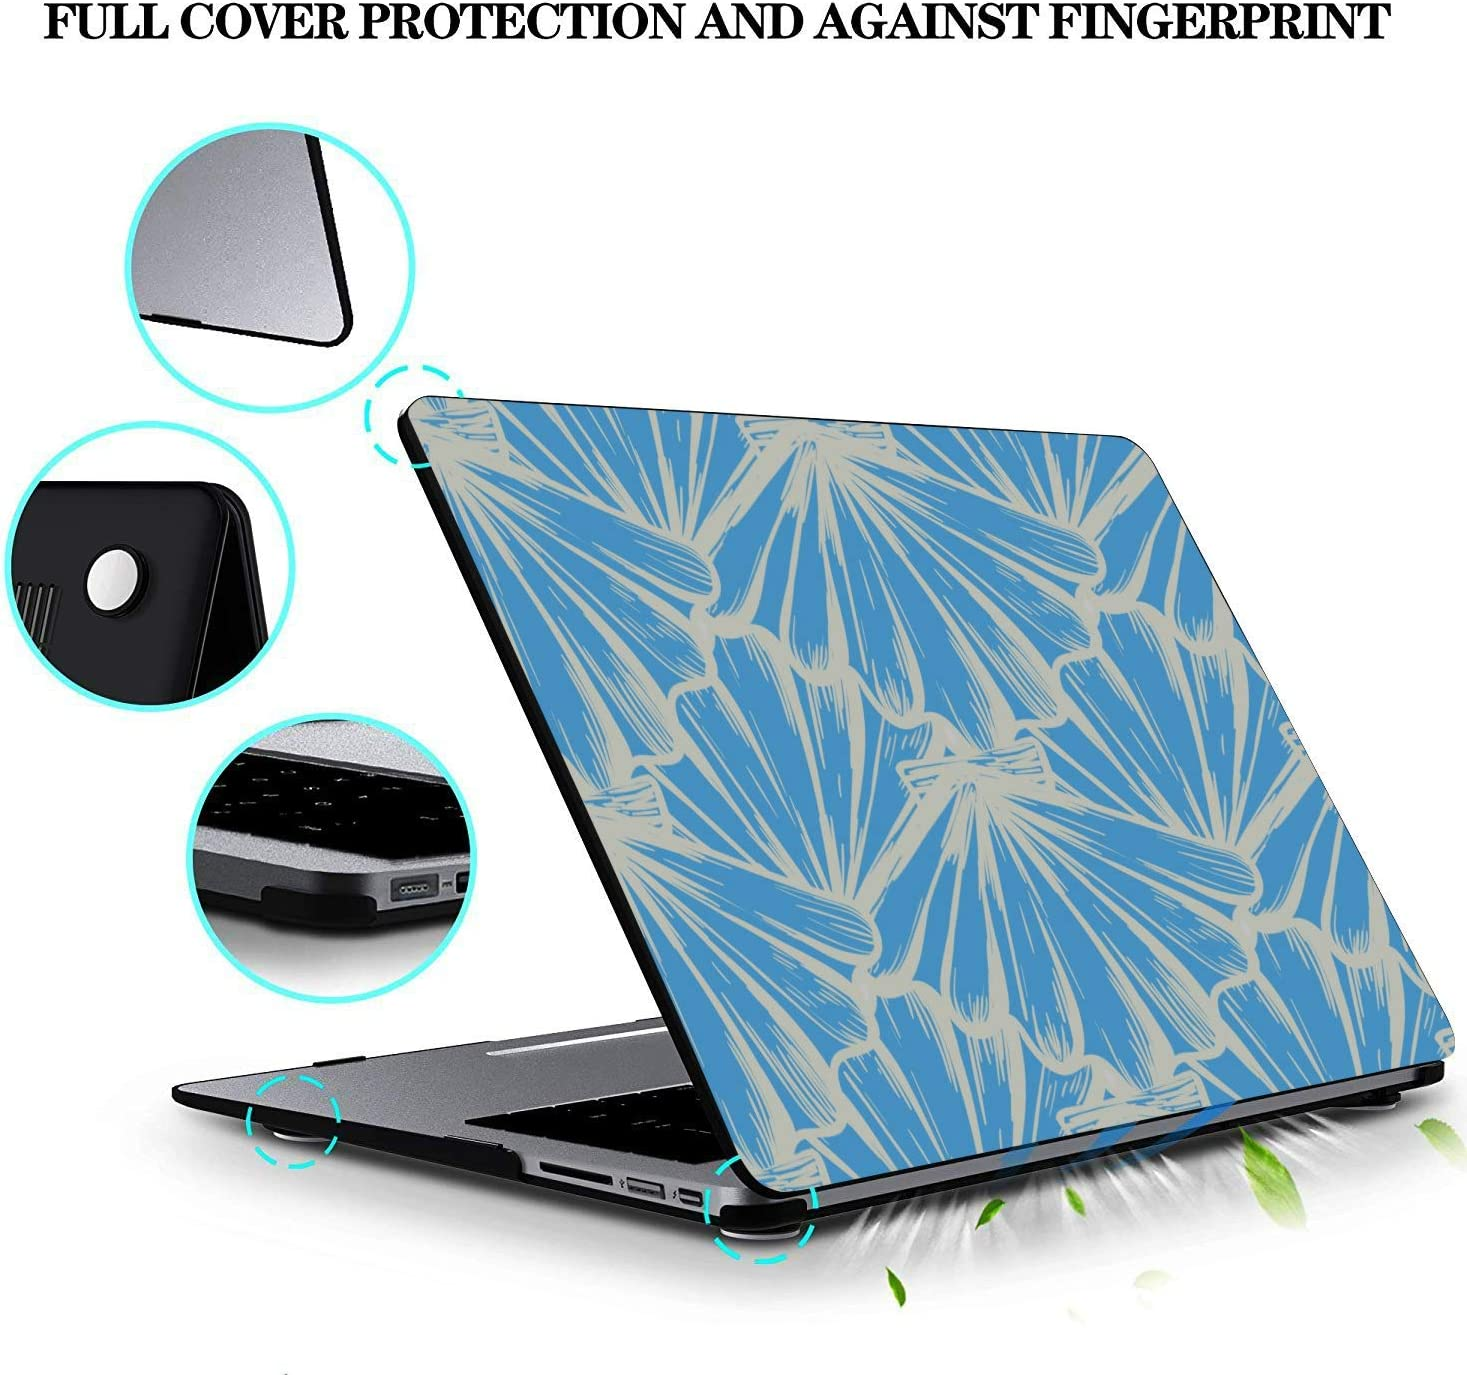 MacBook Cases Summer Seaside Seashells Starfish Plastic Hard Shell Compatible Mac Air 11 Pro 13 15 Mac Book Pro Cover Protection for MacBook 2016-2019 Version